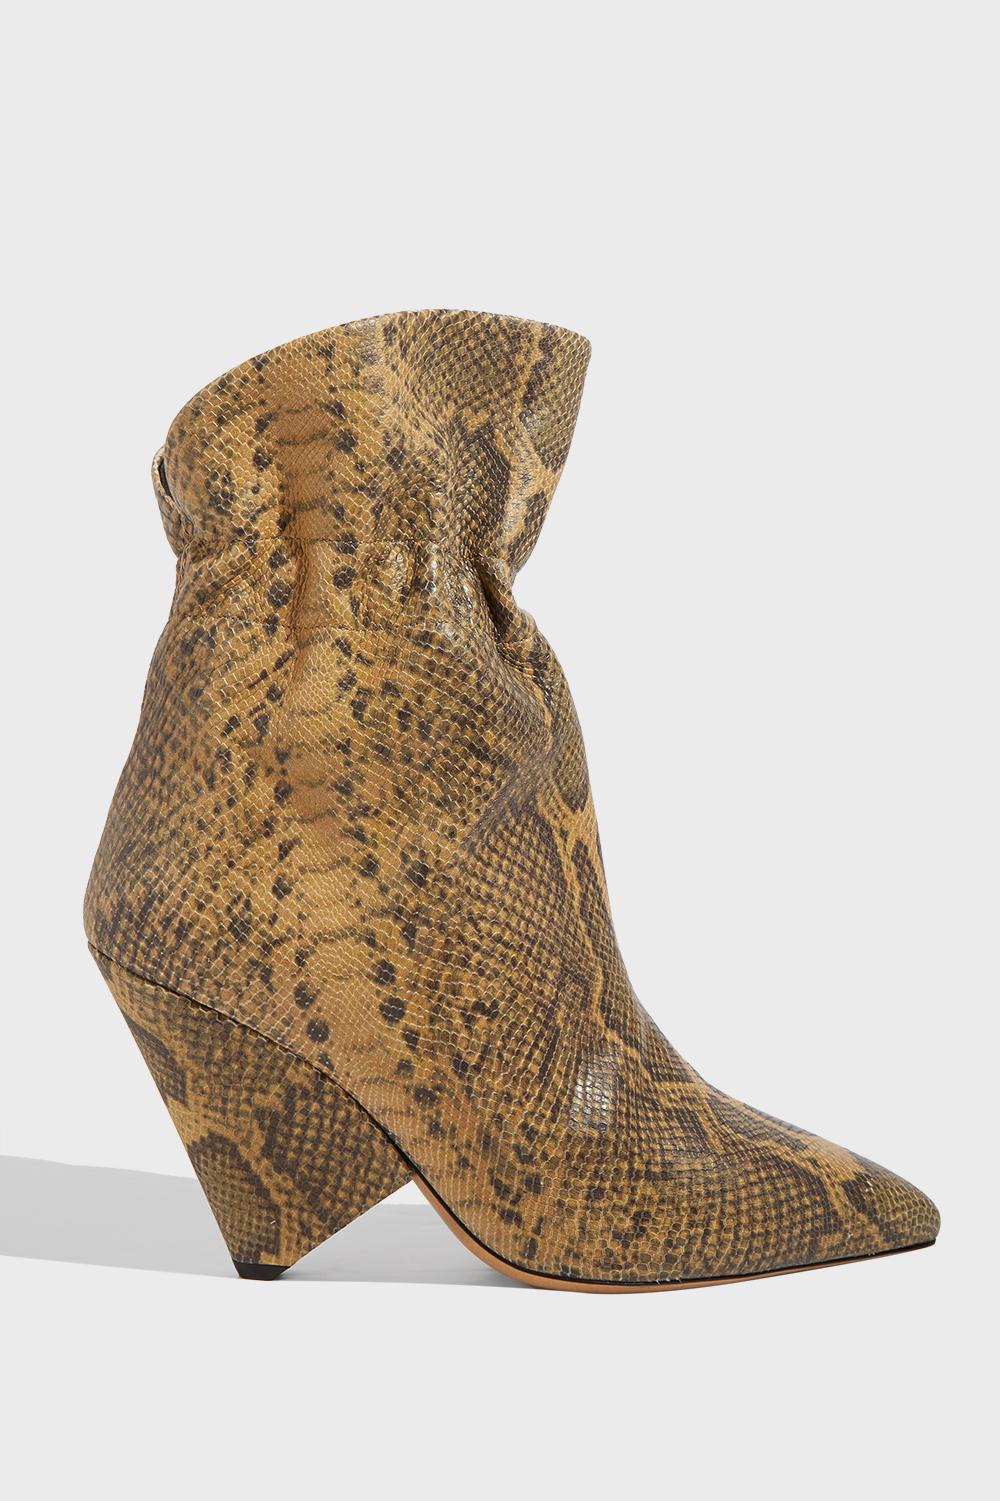 LILEAS SNAKE-EFFECT LEATHER ANKLE BOOTS, FR41